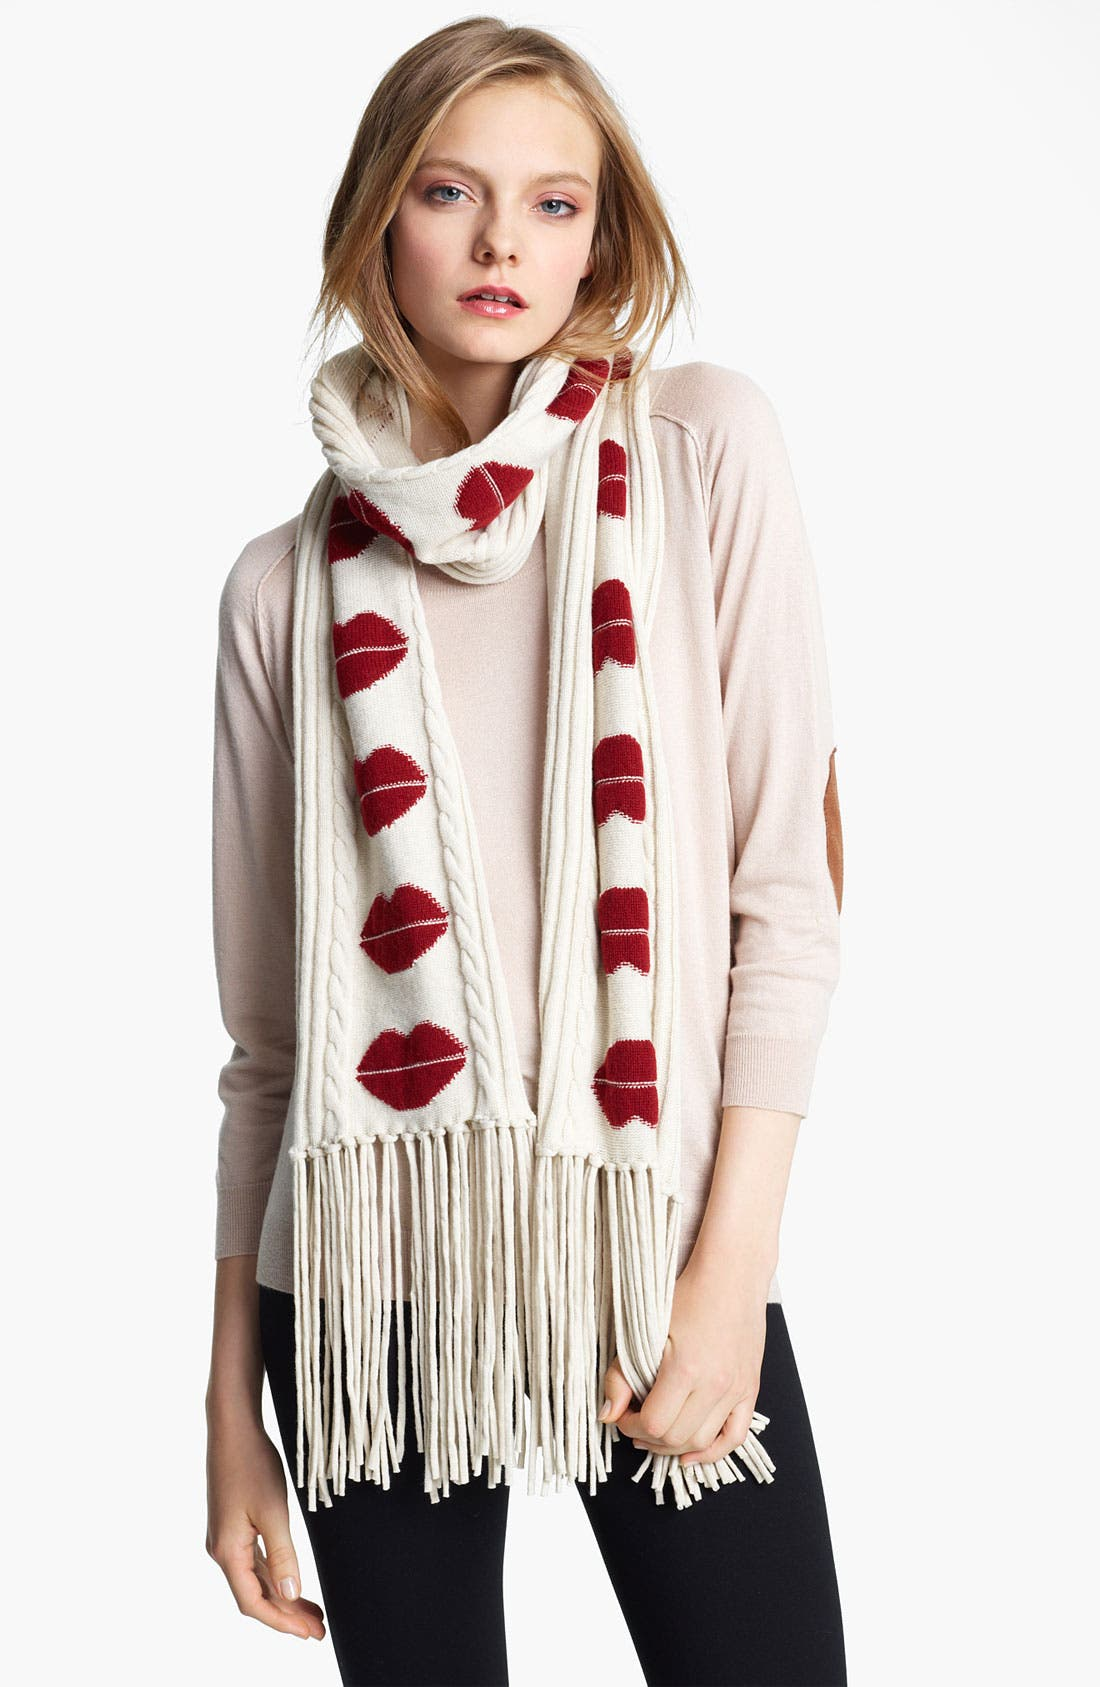 Alternate Image 1 Selected - Sonia Rykiel 'Lips' Wool & Cashmere Scarf